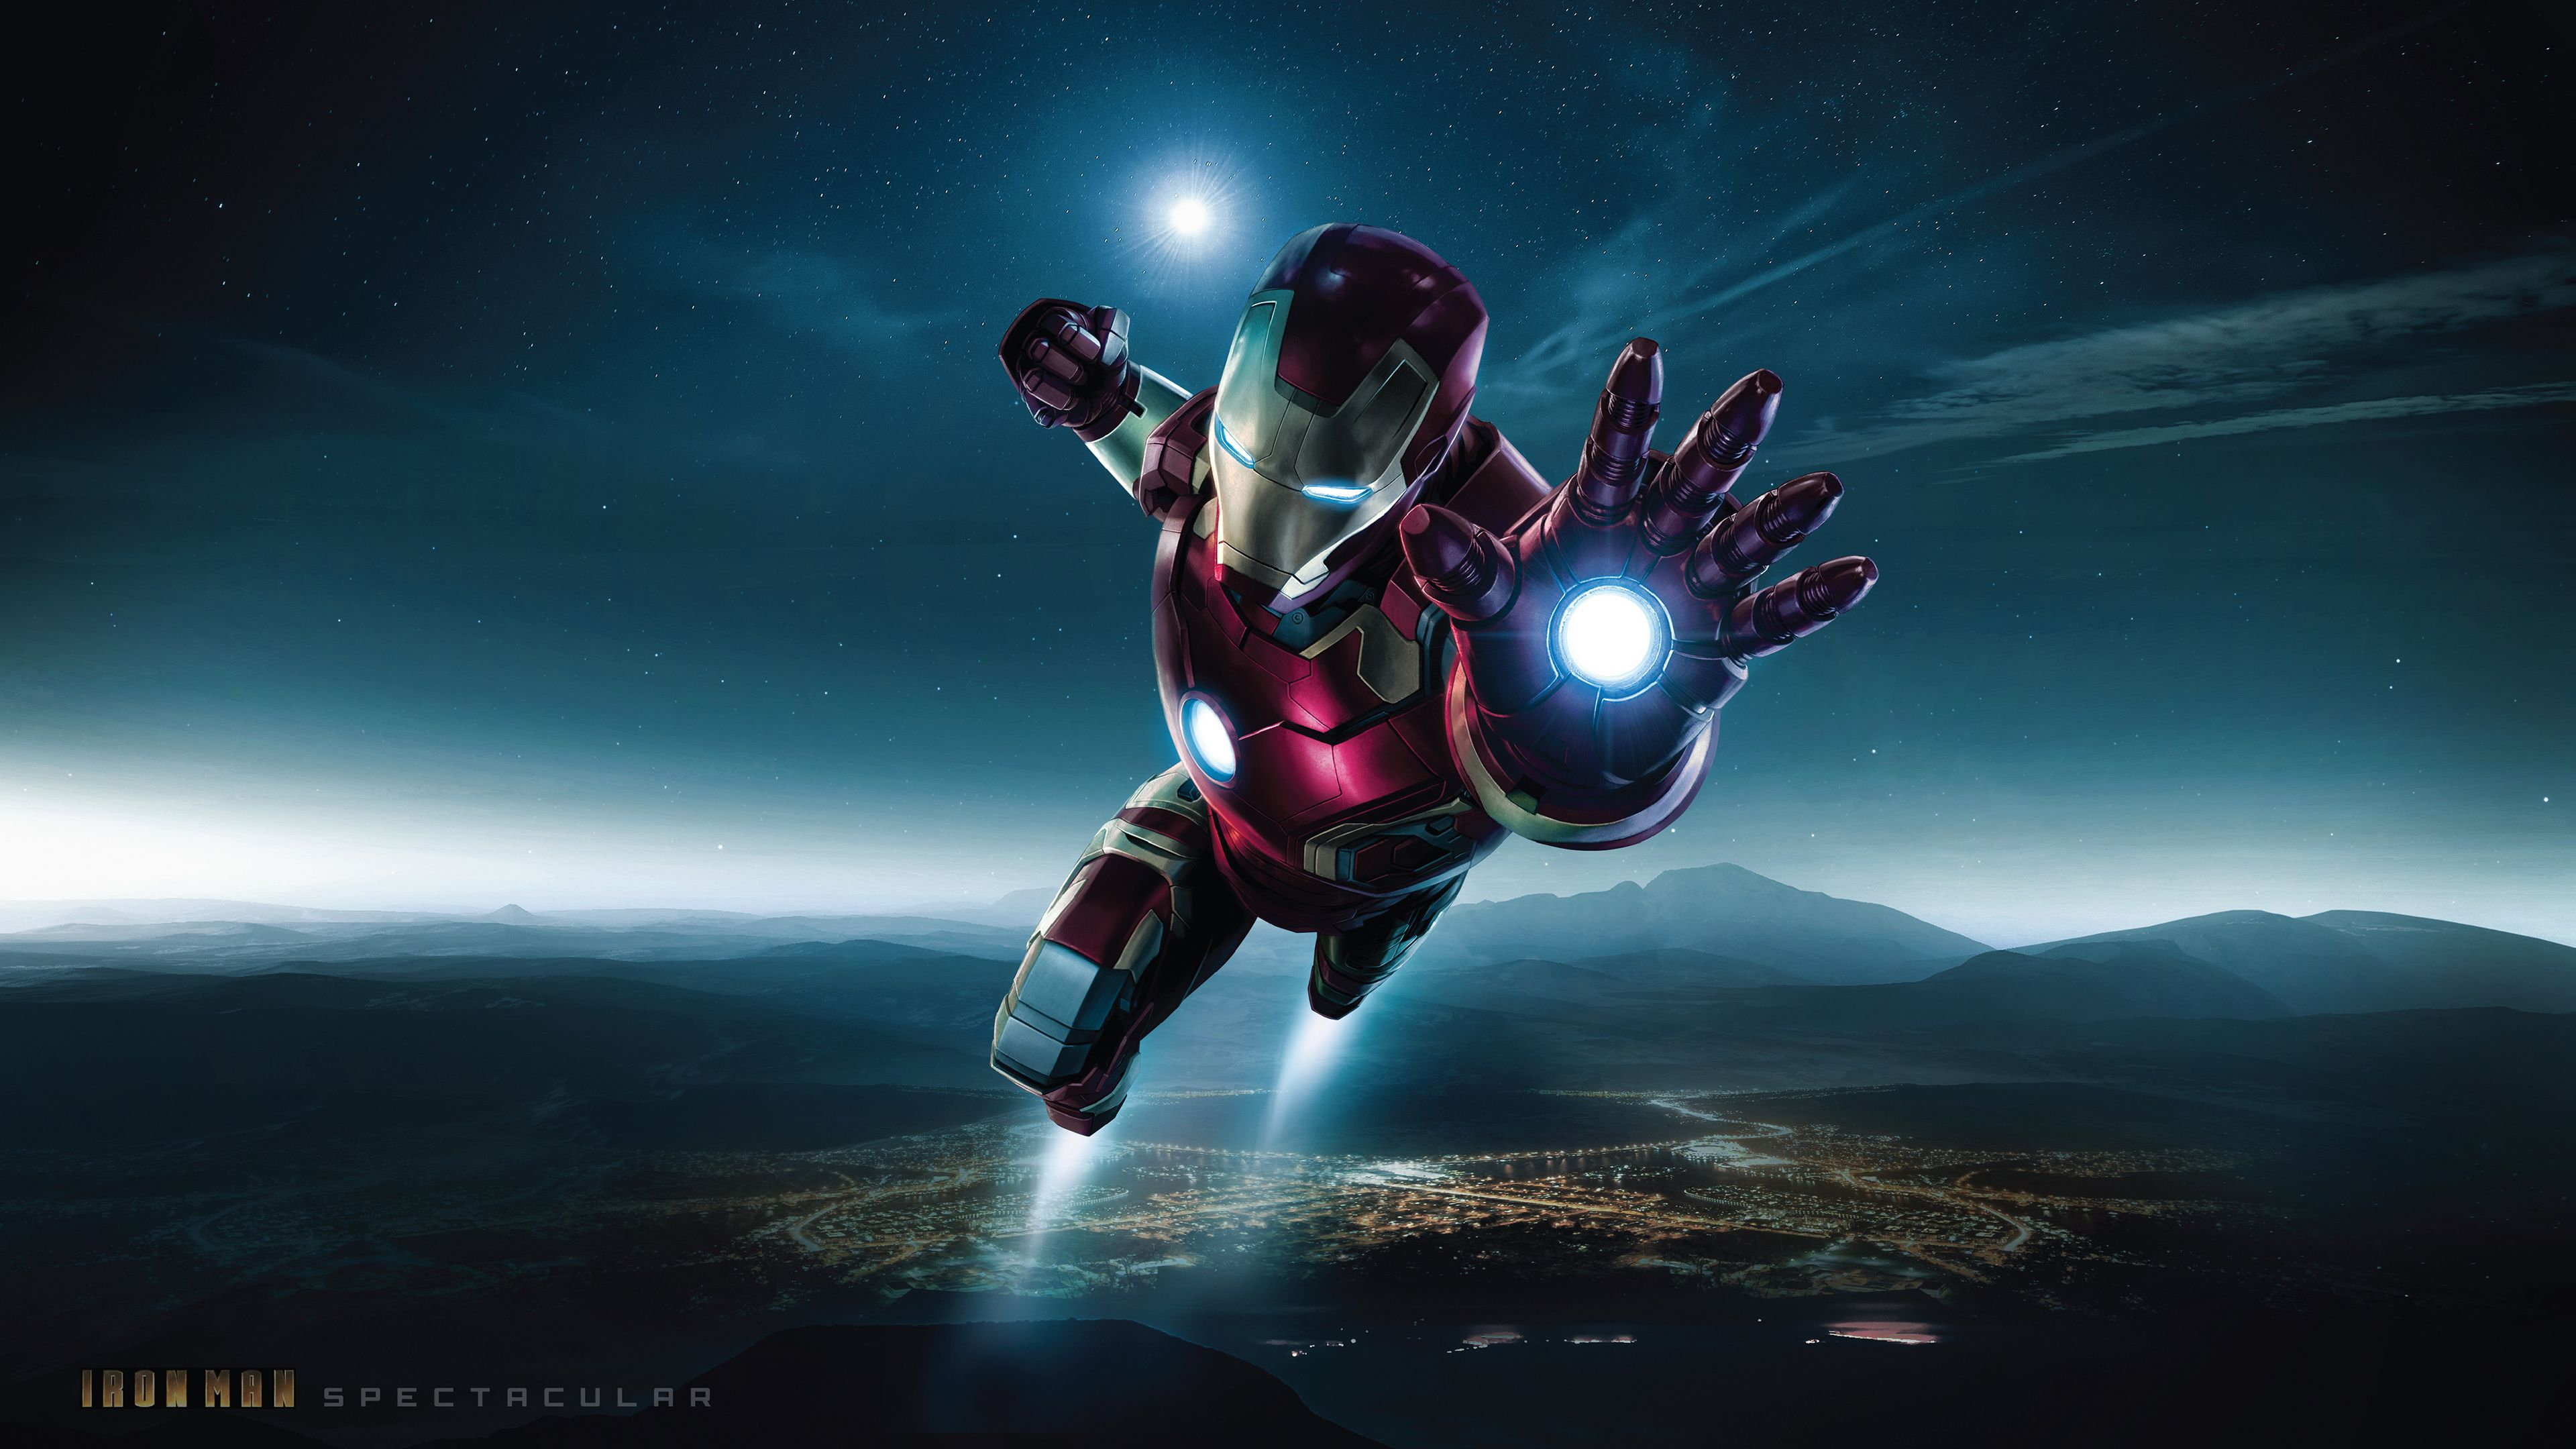 Spectacular Iron Man 4k Superheroes Wallpapers Iron Man Wallpapers Hd Wallpapers Digital Art Wall Iron Man Wallpaper Iron Man Pictures Iron Man Hd Wallpaper